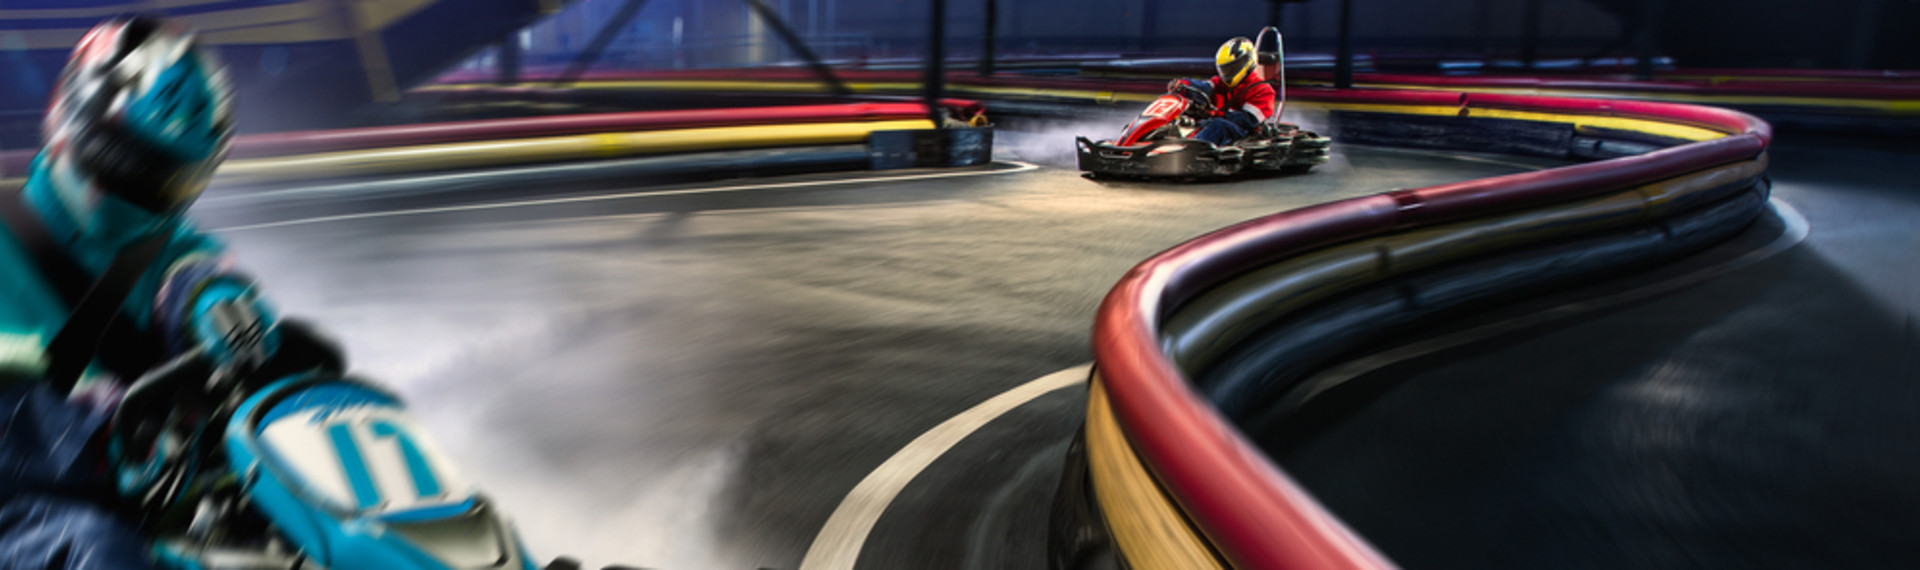 Indoor Go Karting Barcelona | Pissup | Stag party experts since 2001